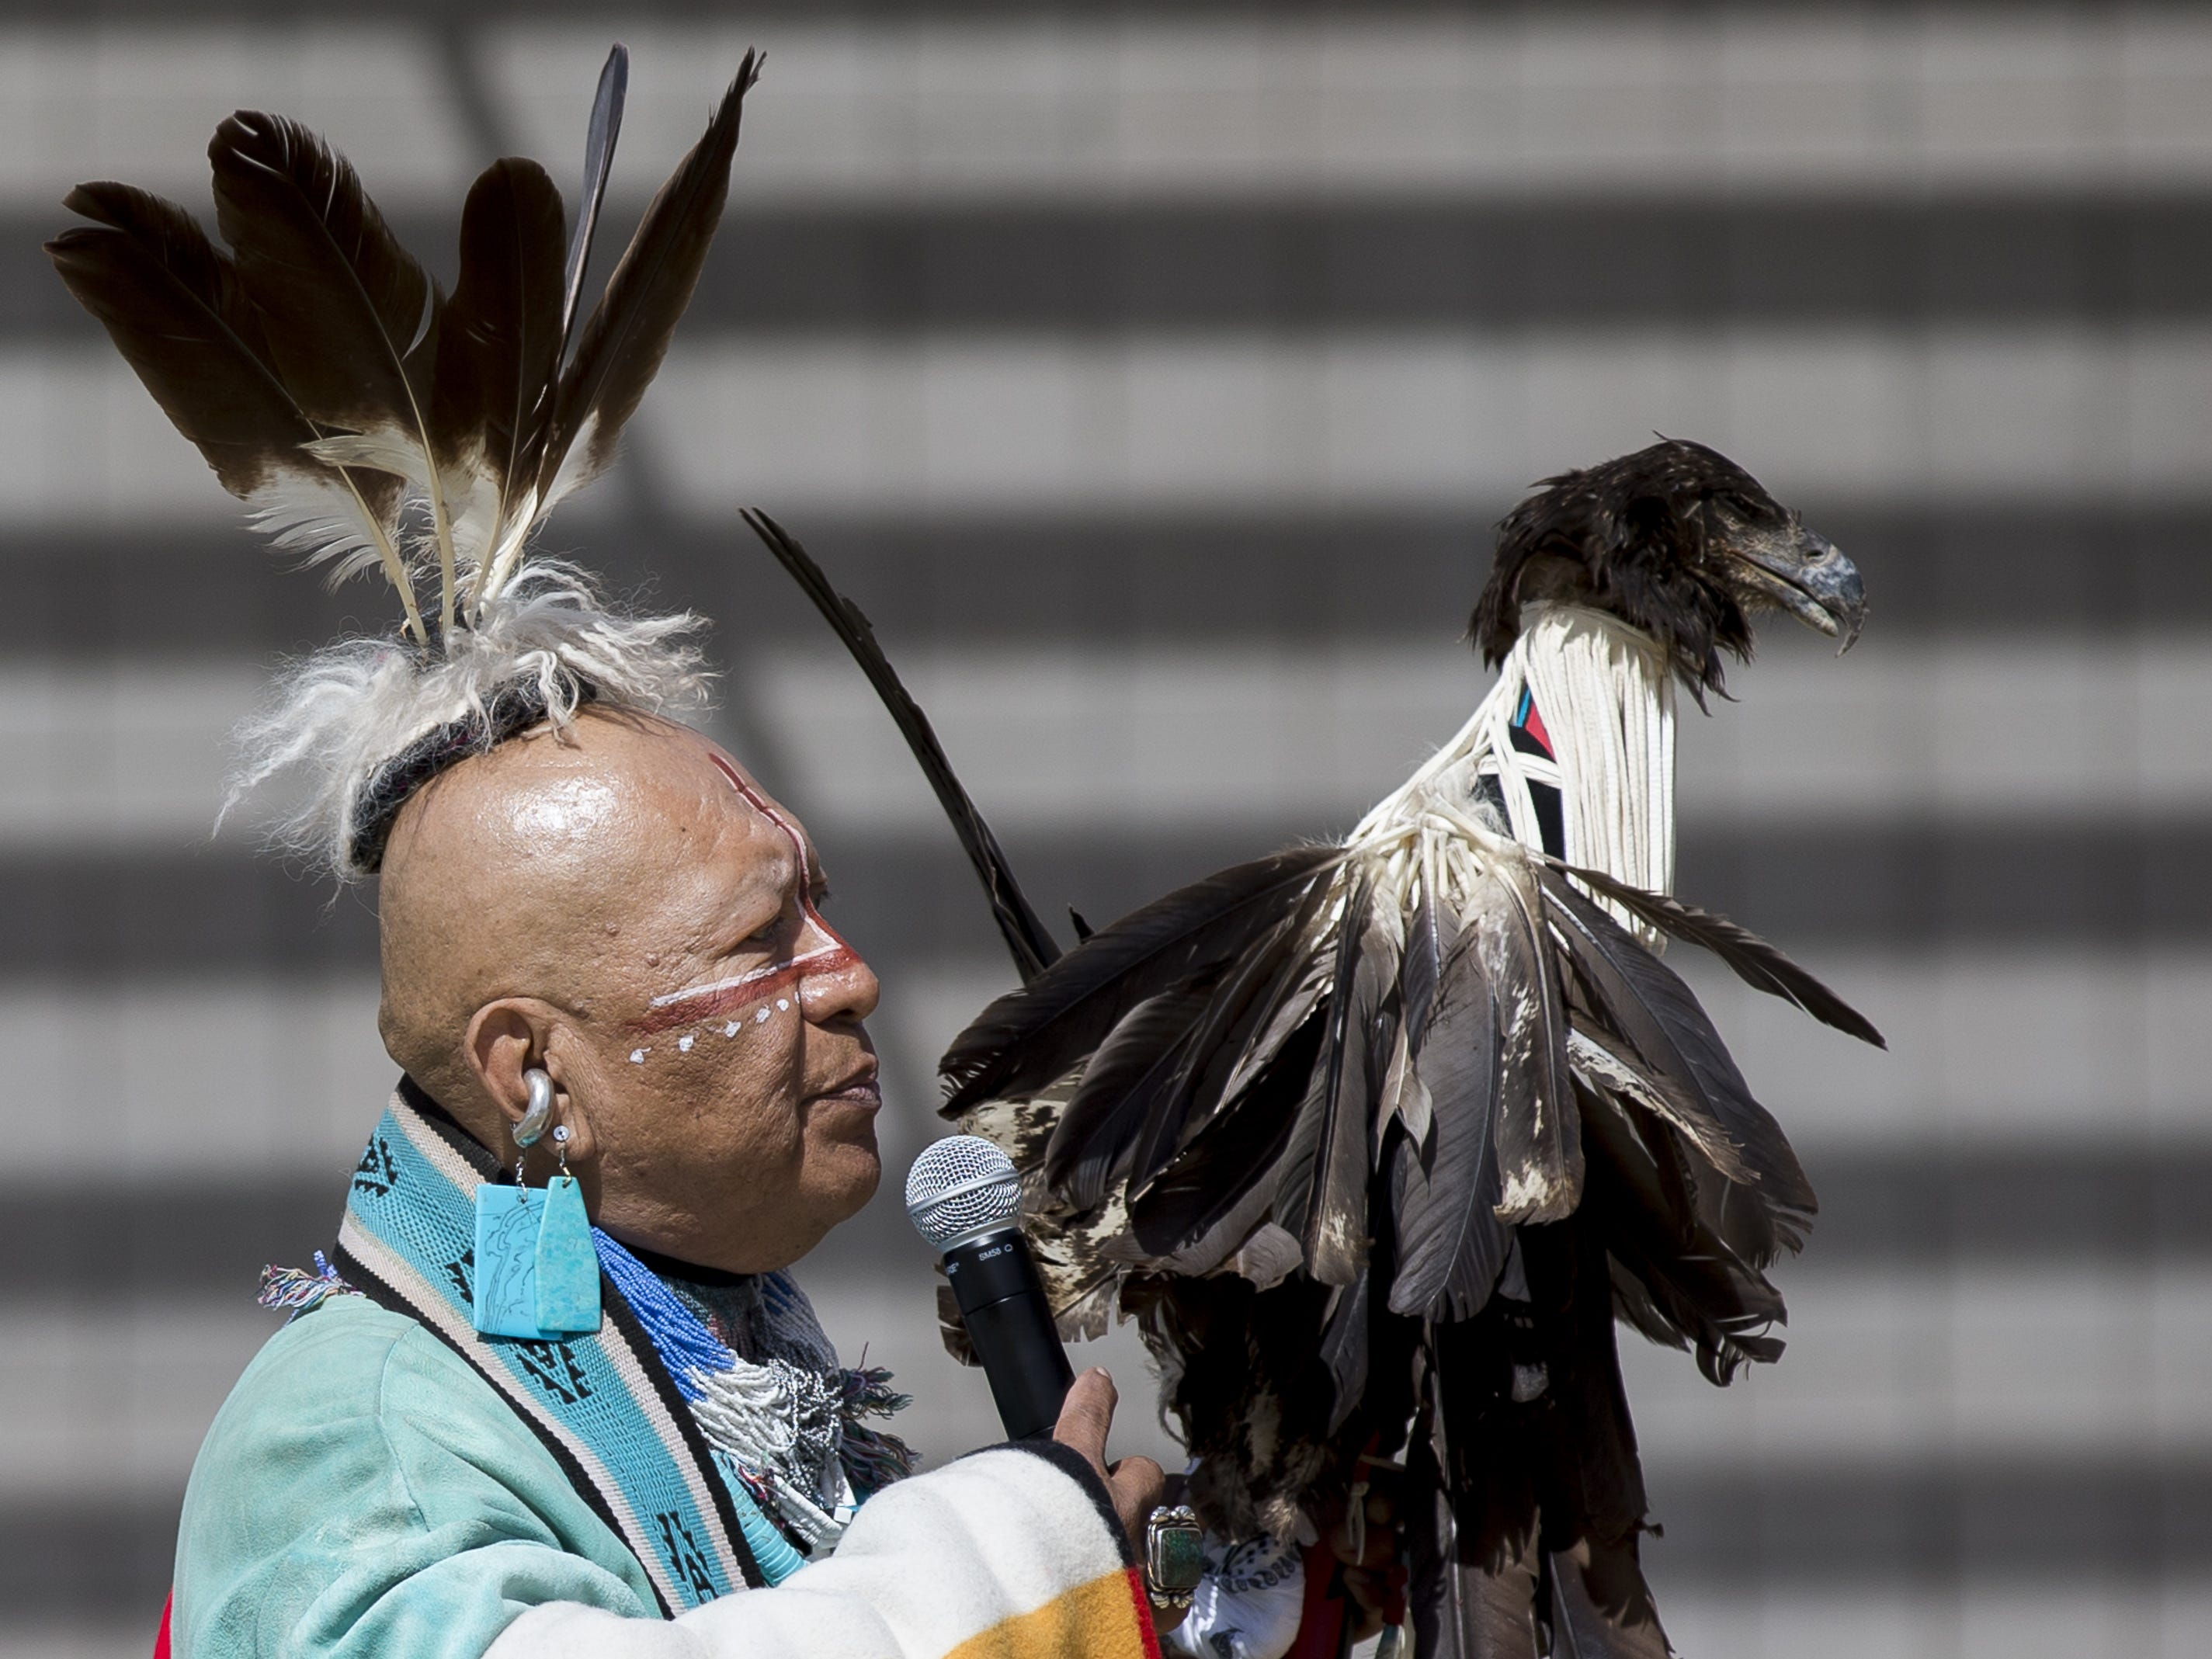 Havasupai medicine man Uqualla blesses the grounds before the Native Two Spirit Powwow at South Mountain Community College in Phoenix, Ariz. on Saturday, March 9, 2019. The powwow was the first of its kind in Arizona, featuring members who identified as two spirit, and members who did not, dancing together.